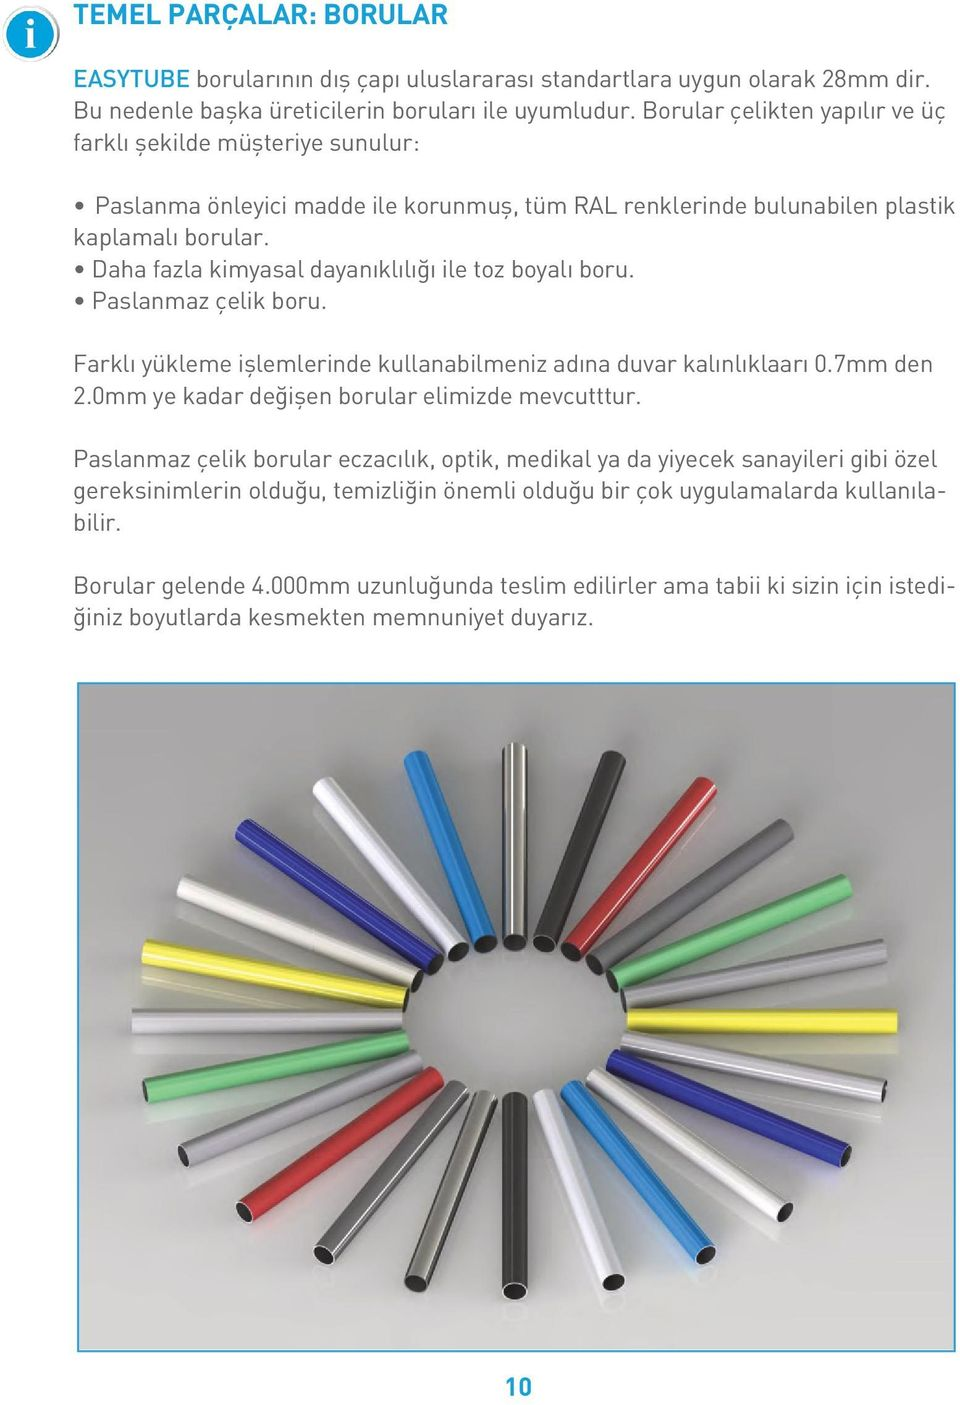 şekilde müşteriye The pipes sunulur: are made of steel, are available in three different types: ŸPaslanma Plastic coated önleyici pipes, madde available ile korunmuş, in all RAL colours, tüm RAL